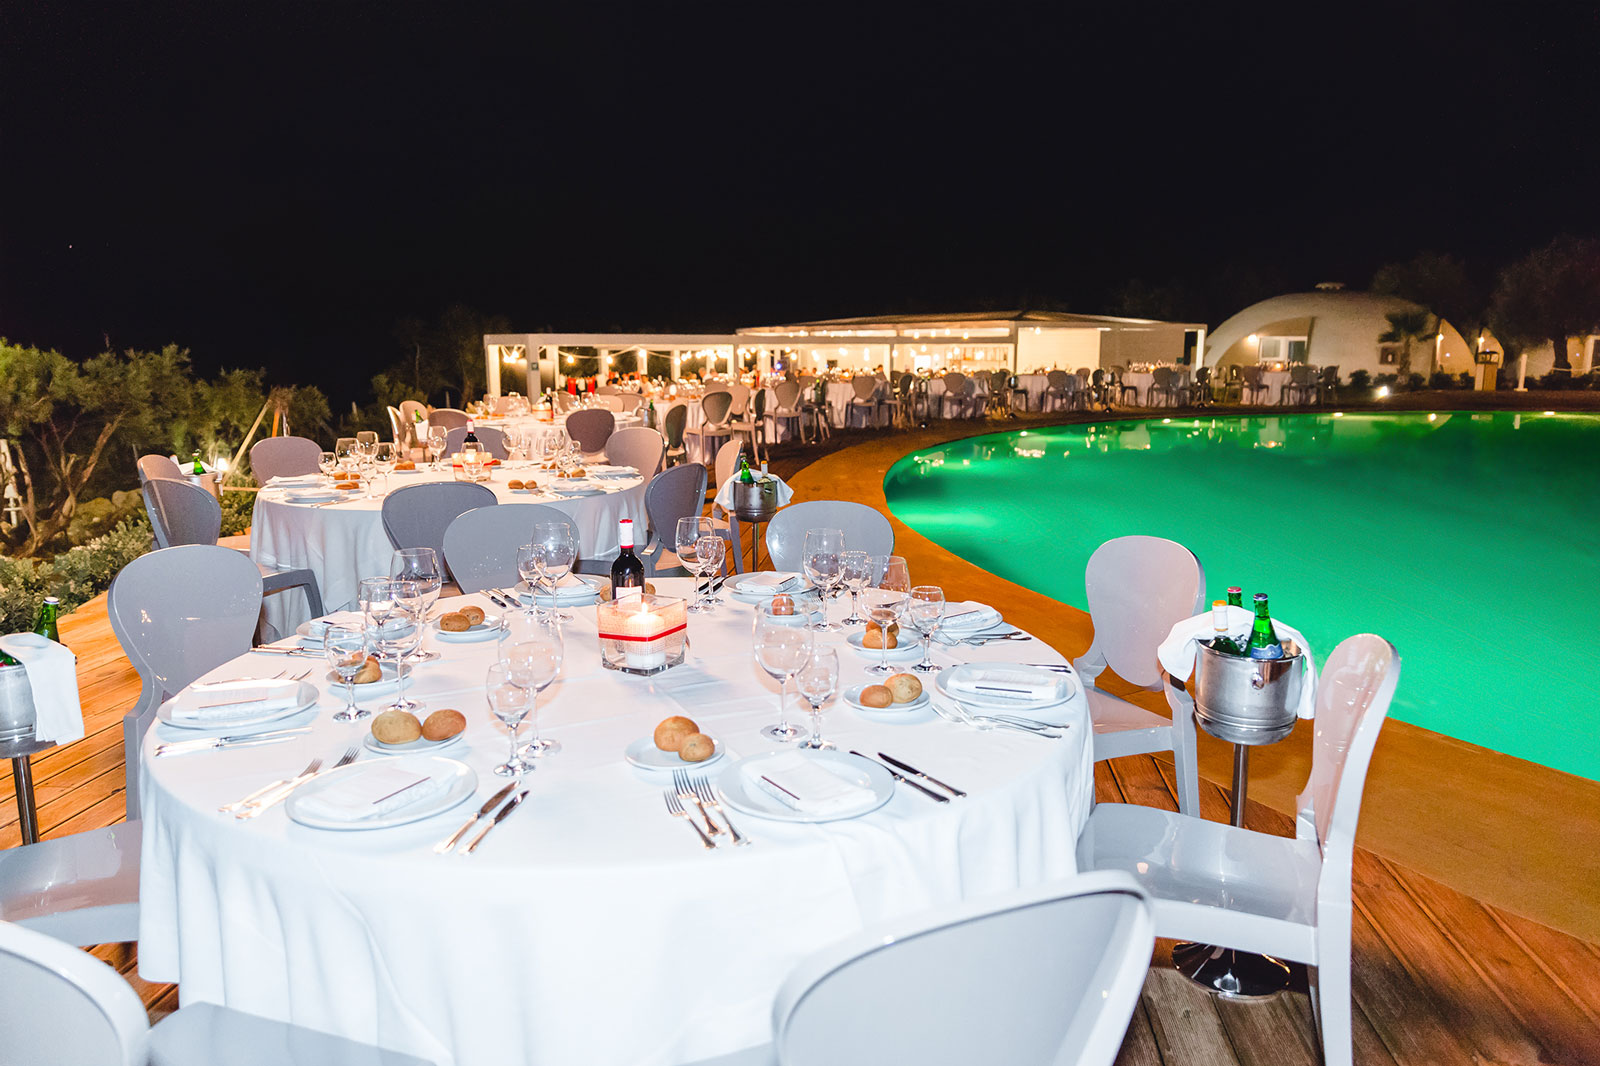 Poolside Dining at Torre Cintola